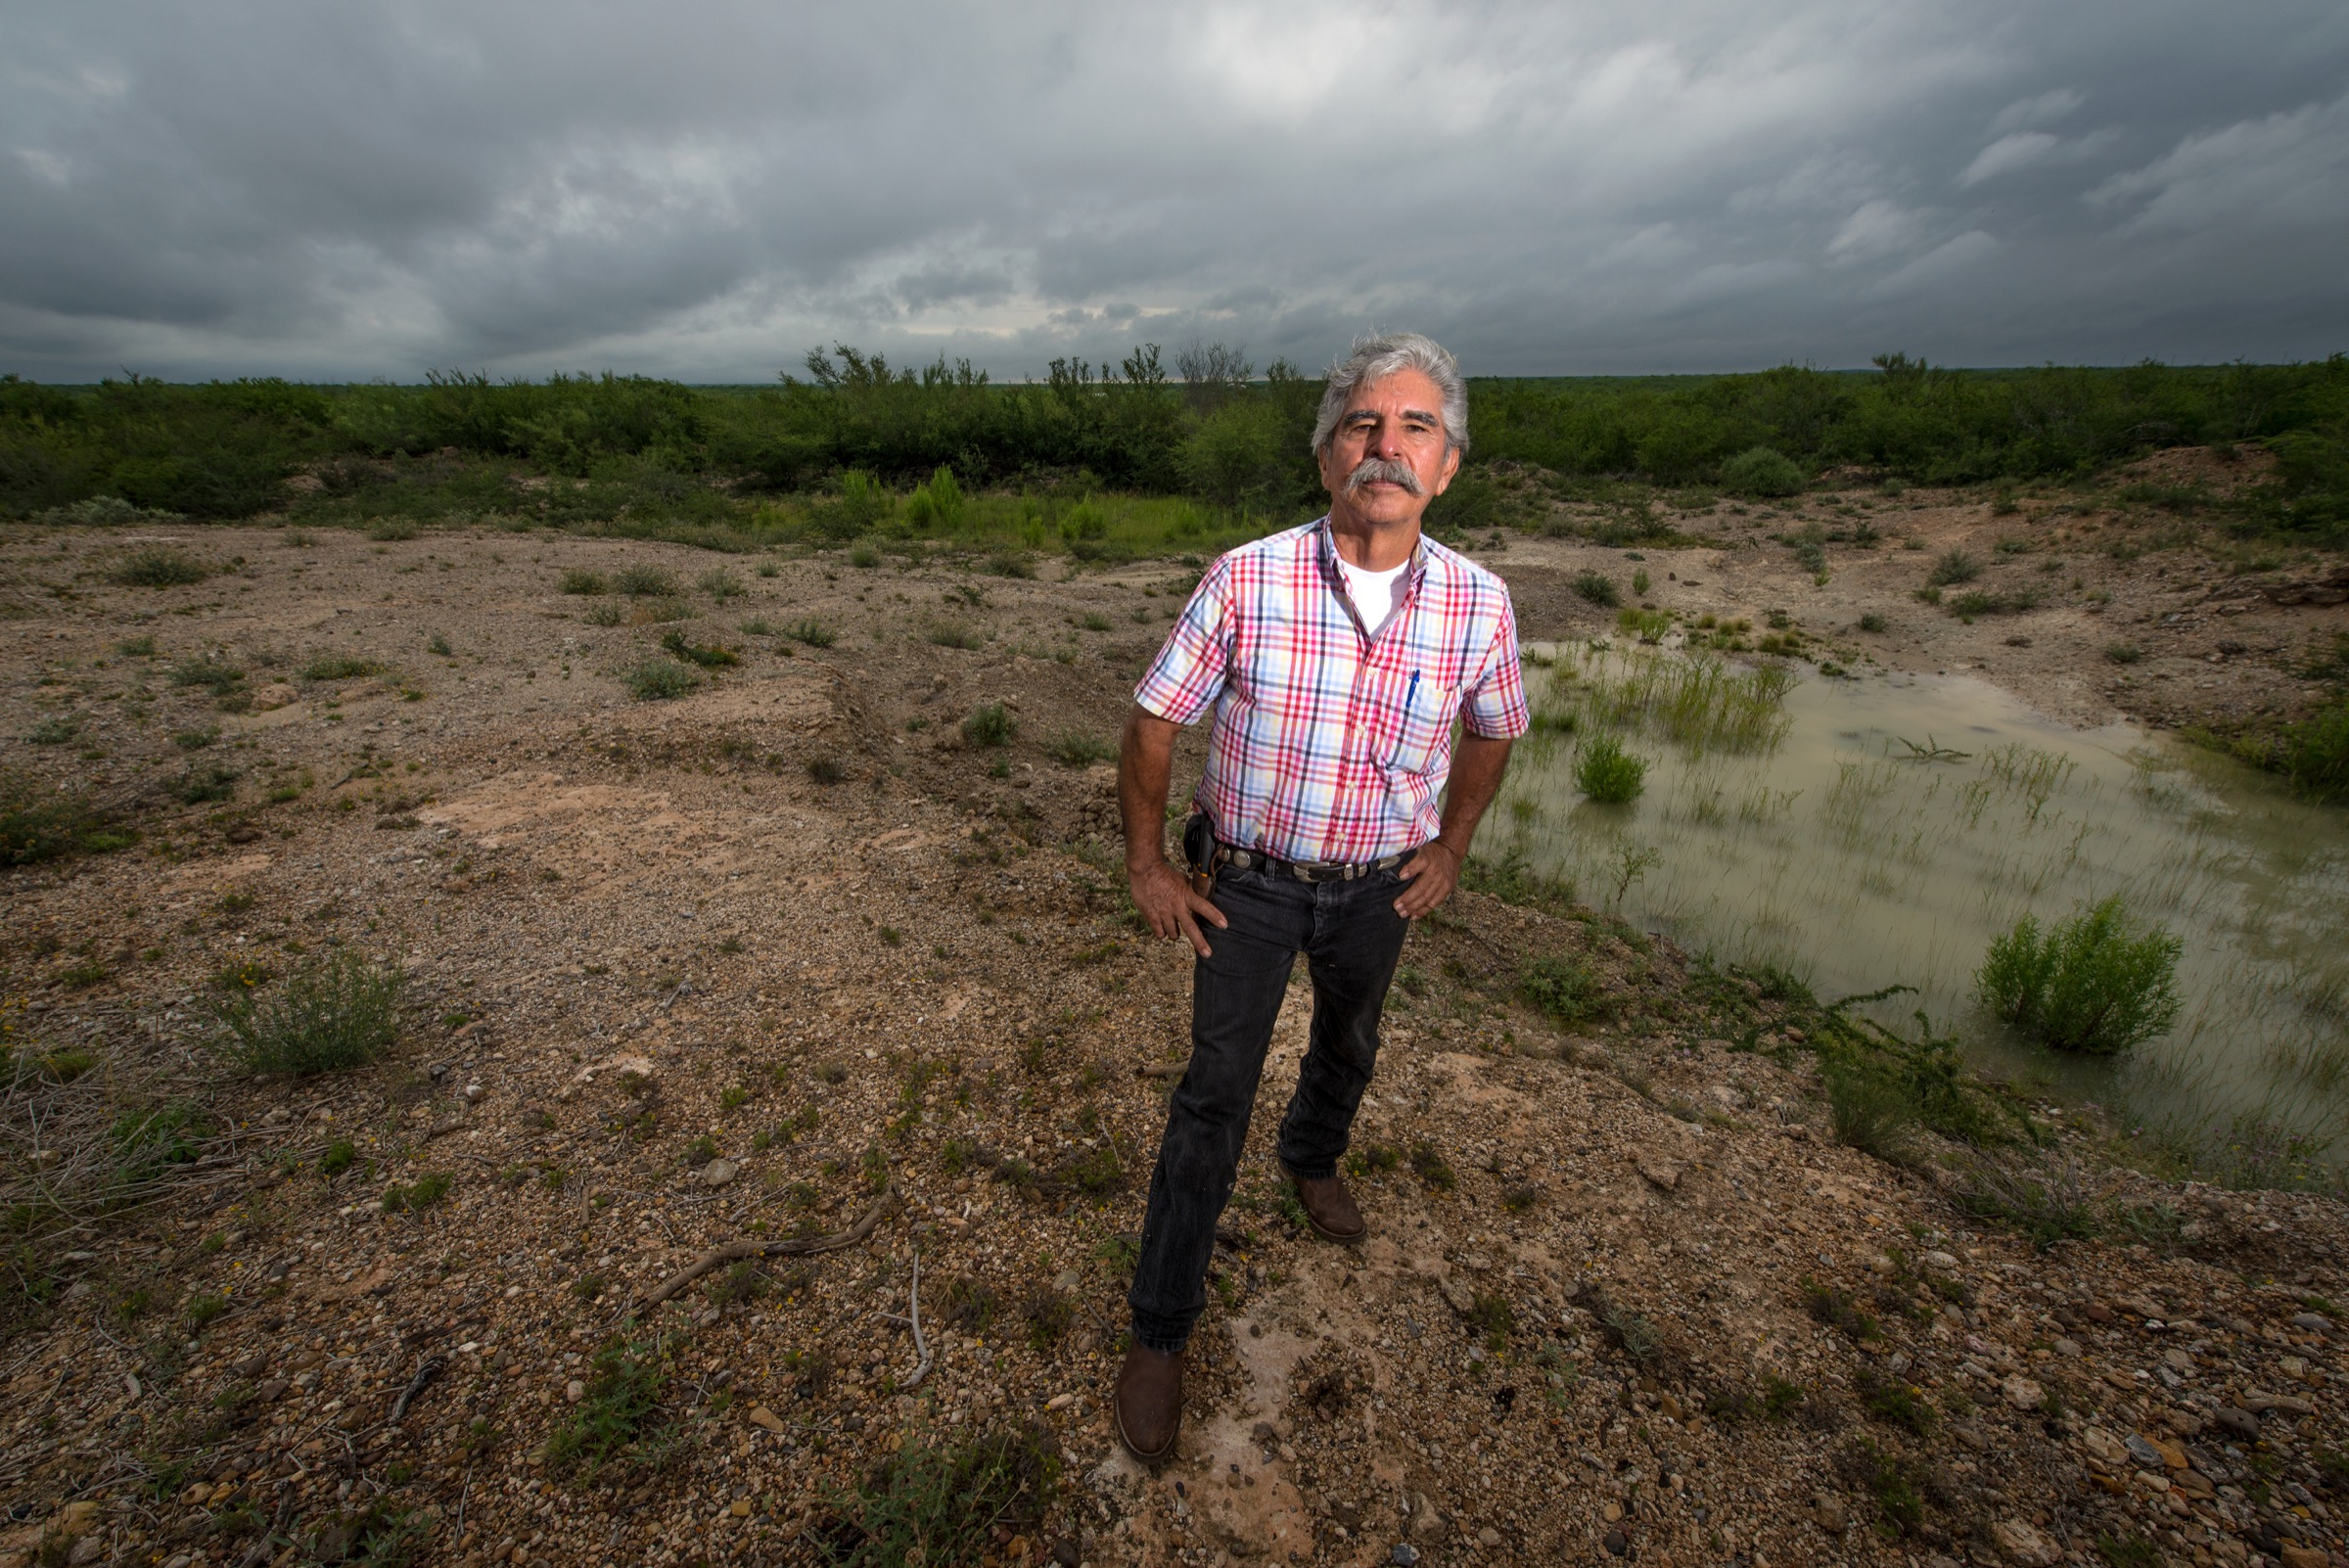 Ethnobotanist Benito Treviño at his property, Rancho Lomitas, located 8miles north of Rio Grande City, Texas